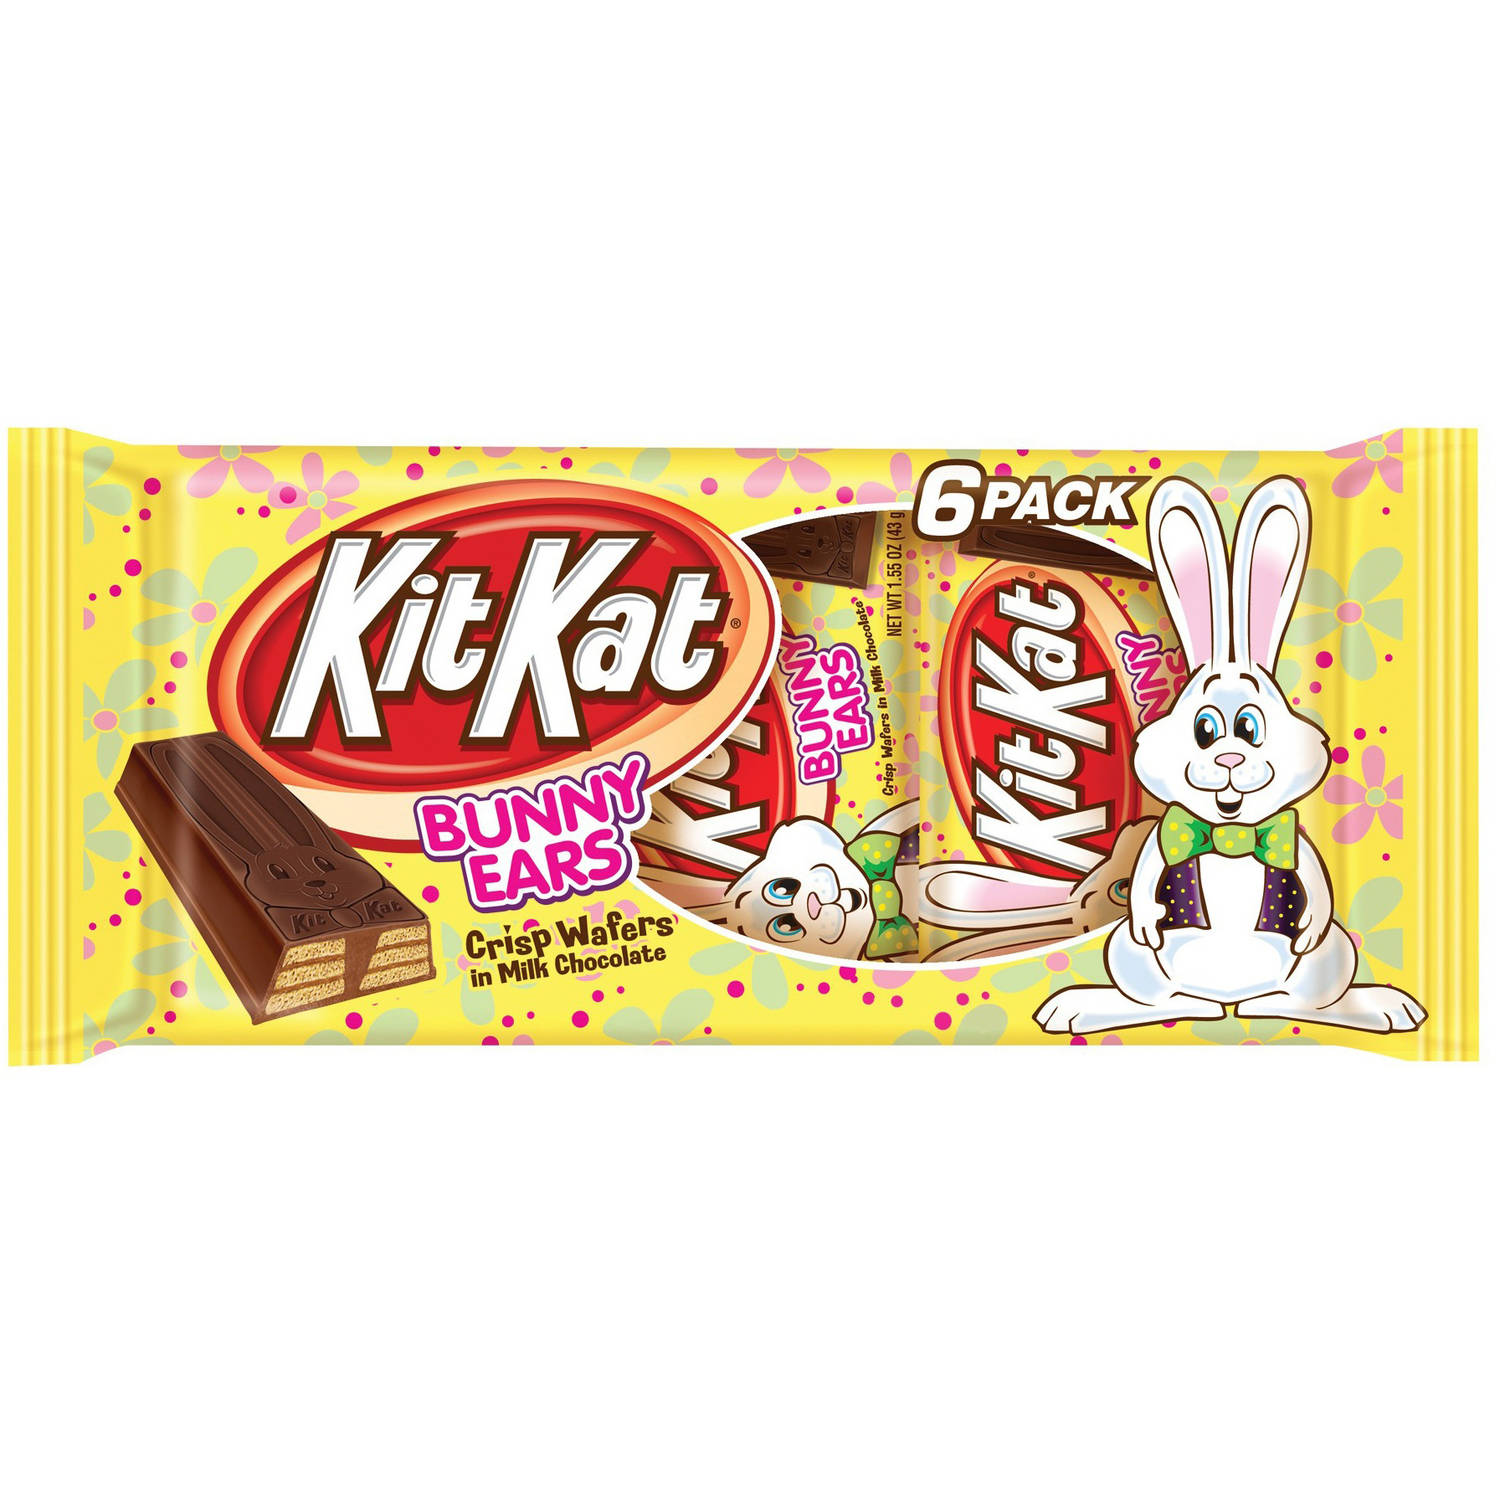 Kit Kat® Easter Milk Chocolate Bunny Ears, 6 Count, 9.3 Ounces